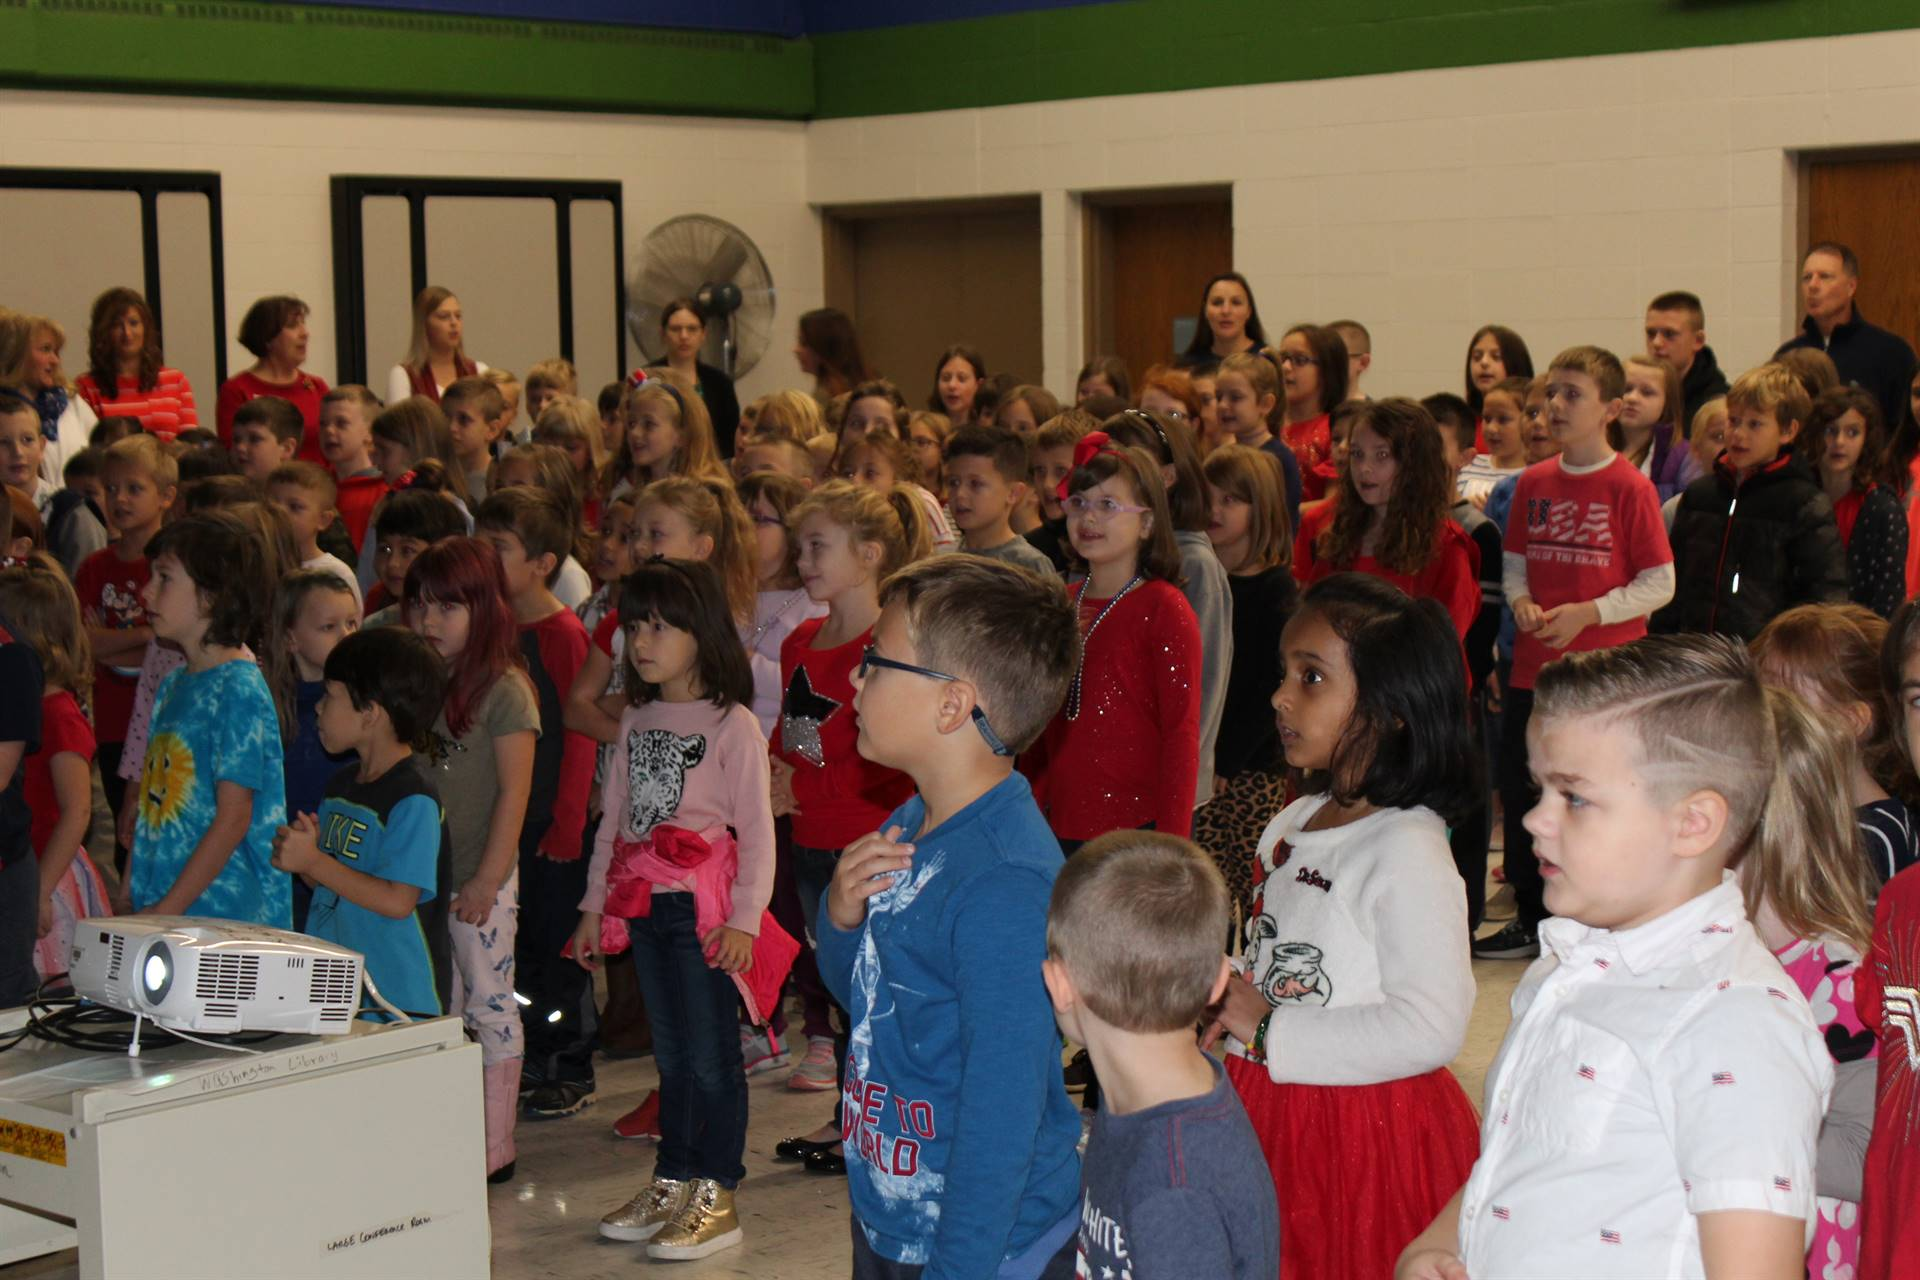 Students reciting the Pledge of Allegiance